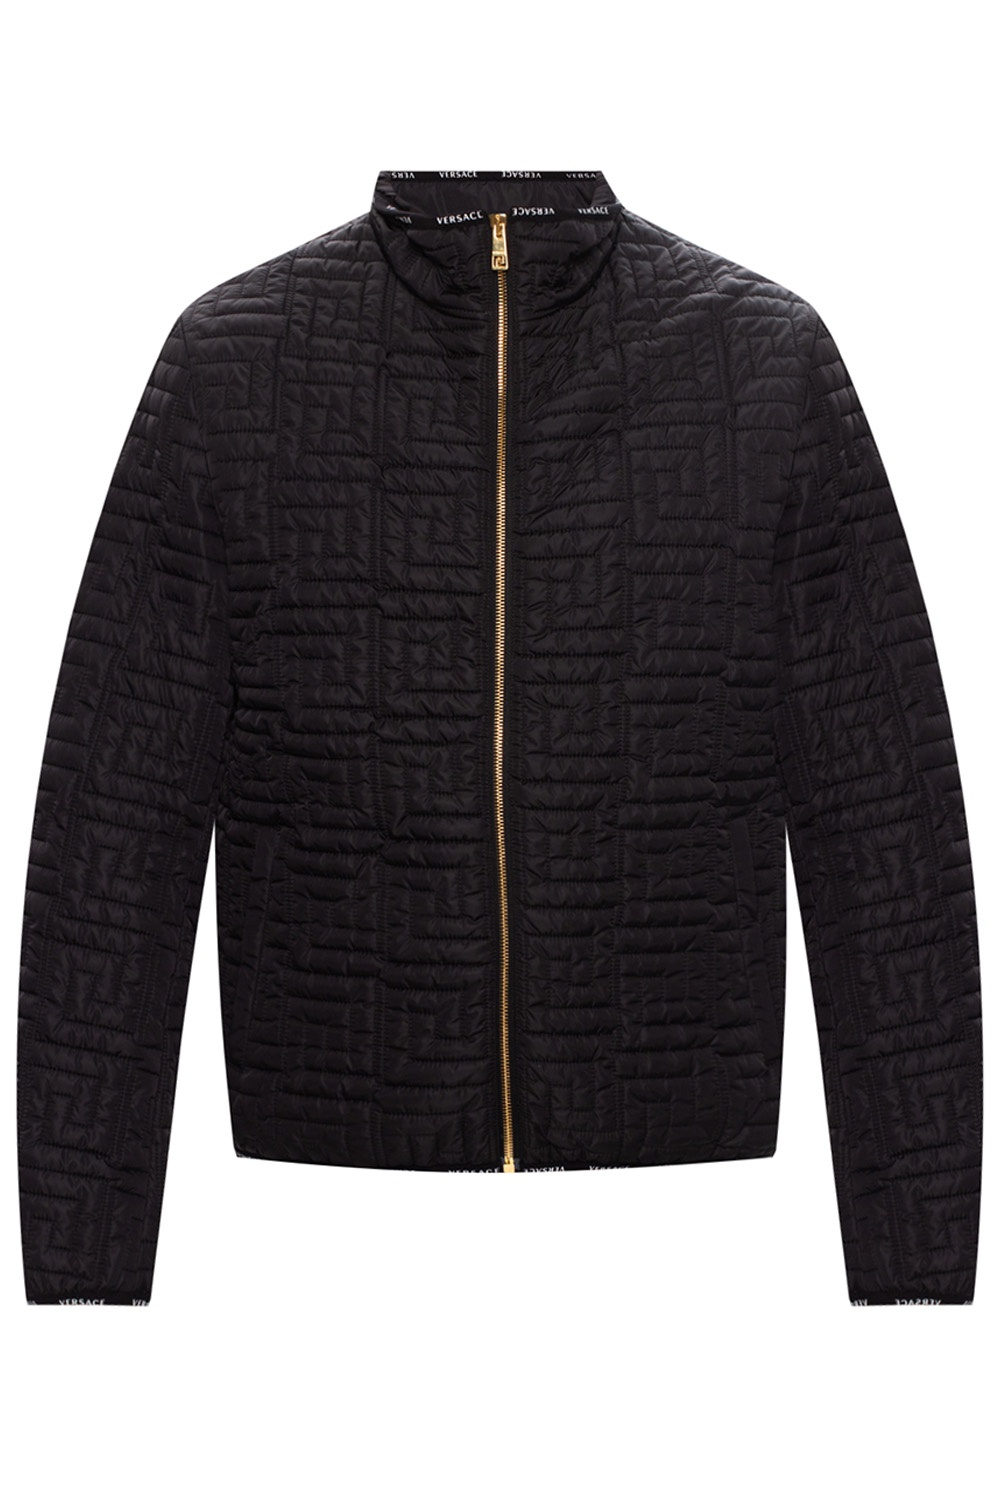 Versace Quilted jacket